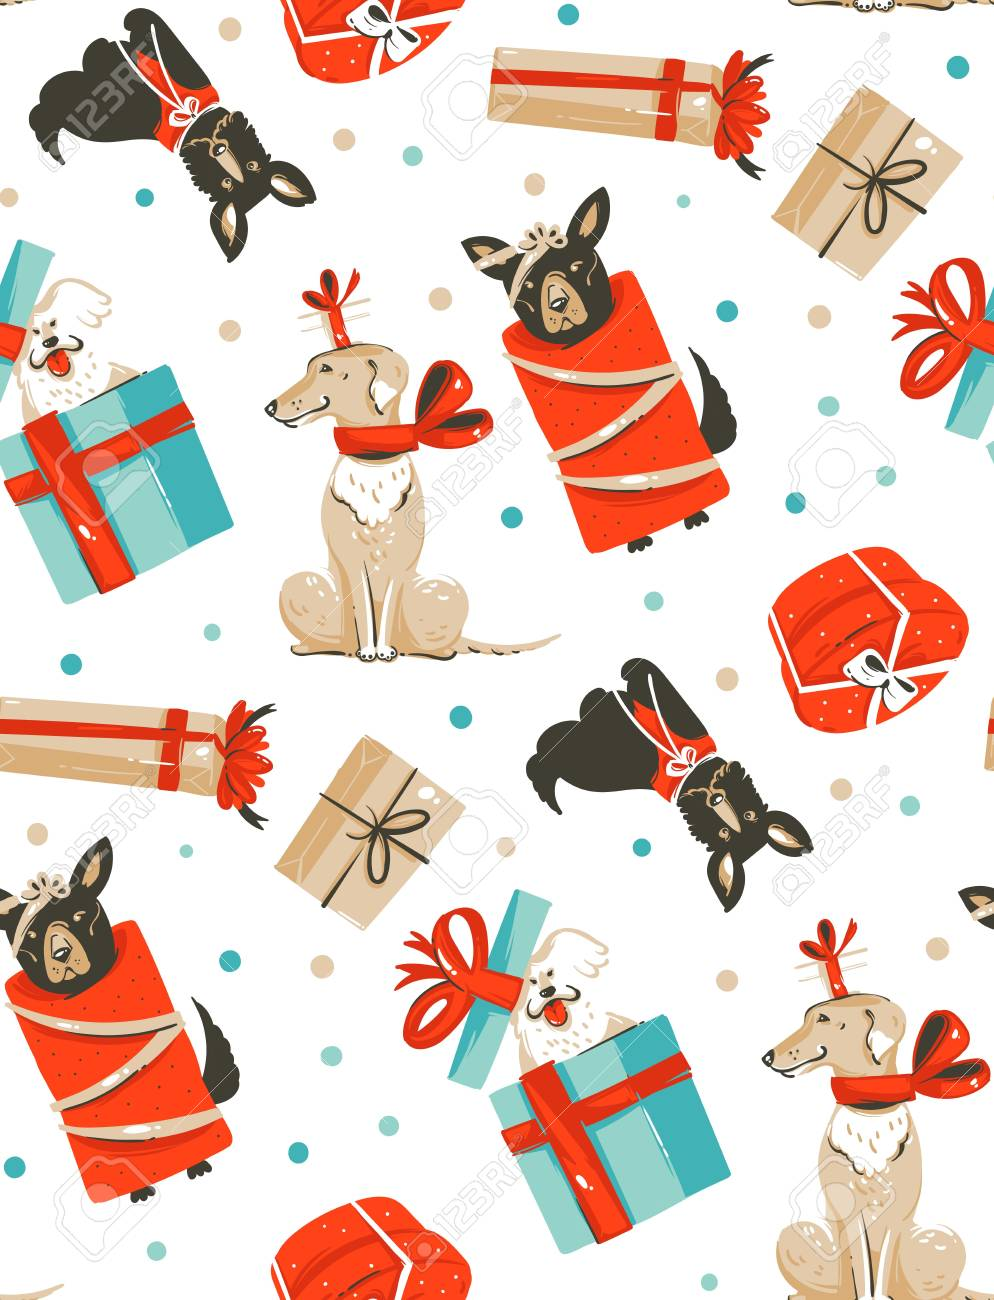 Hand drawn vector abstract fun Merry Christmas time cartoon illustrations seamless pattern with cute funny mammal dogs in vintage Christmas gifts boxes isolated on white background - 88534412